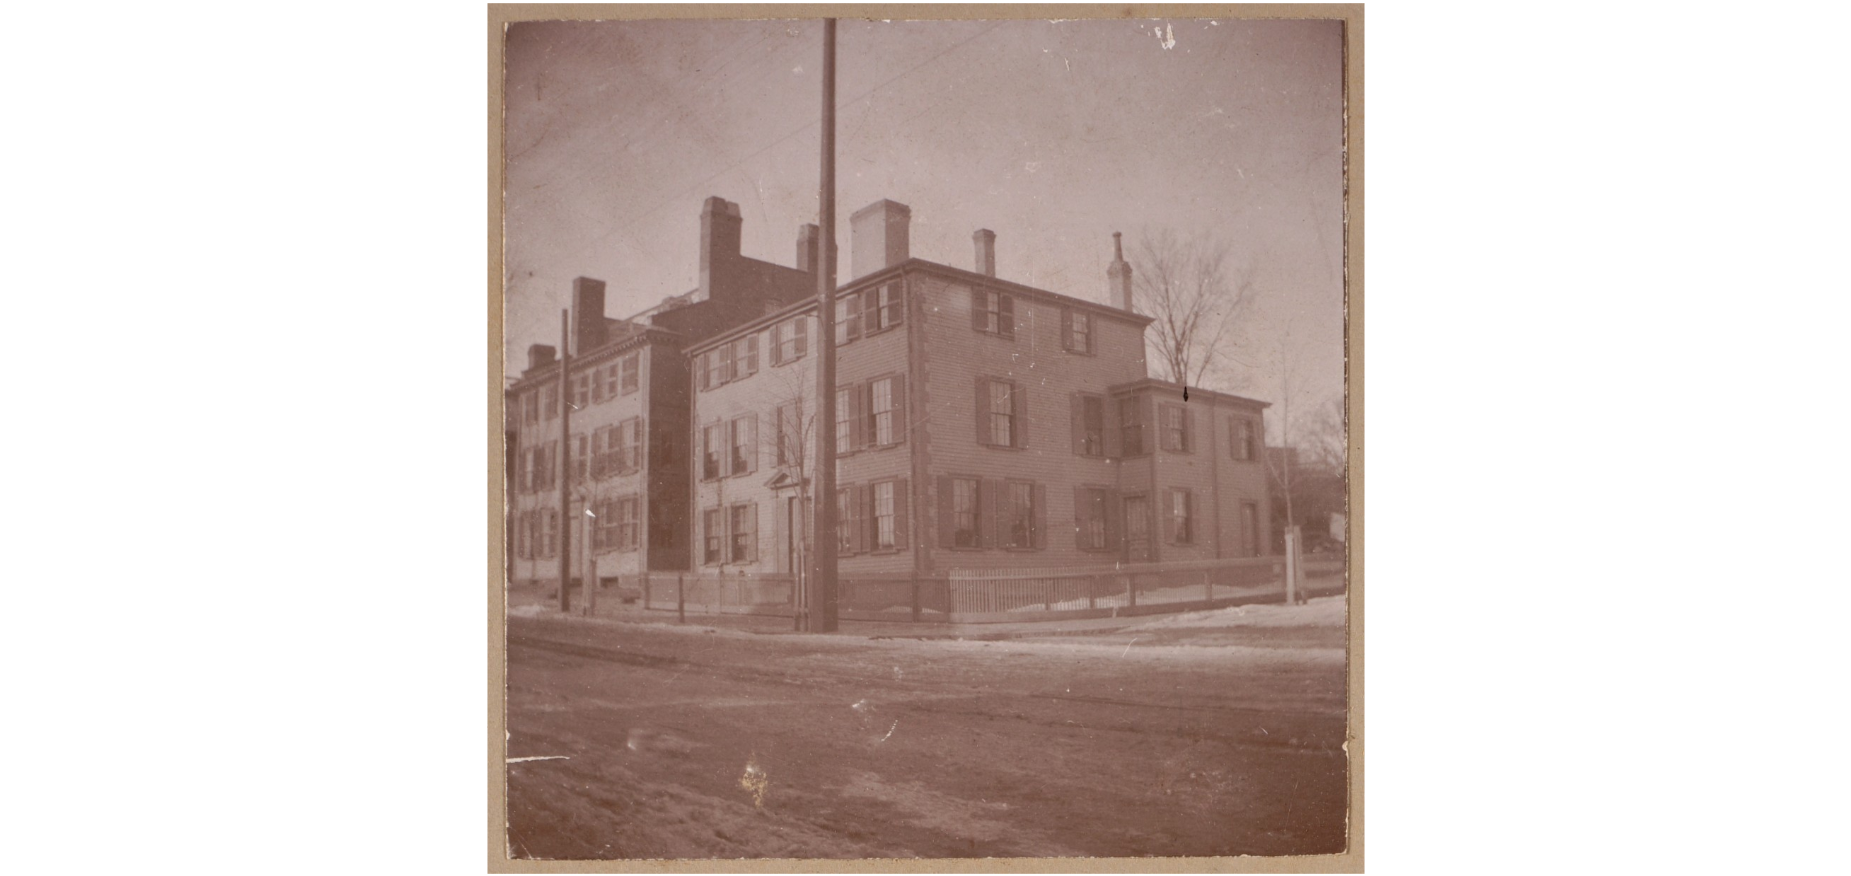 Isaac Hall House, taken between 1895-1905 (image from Boston Public Library)